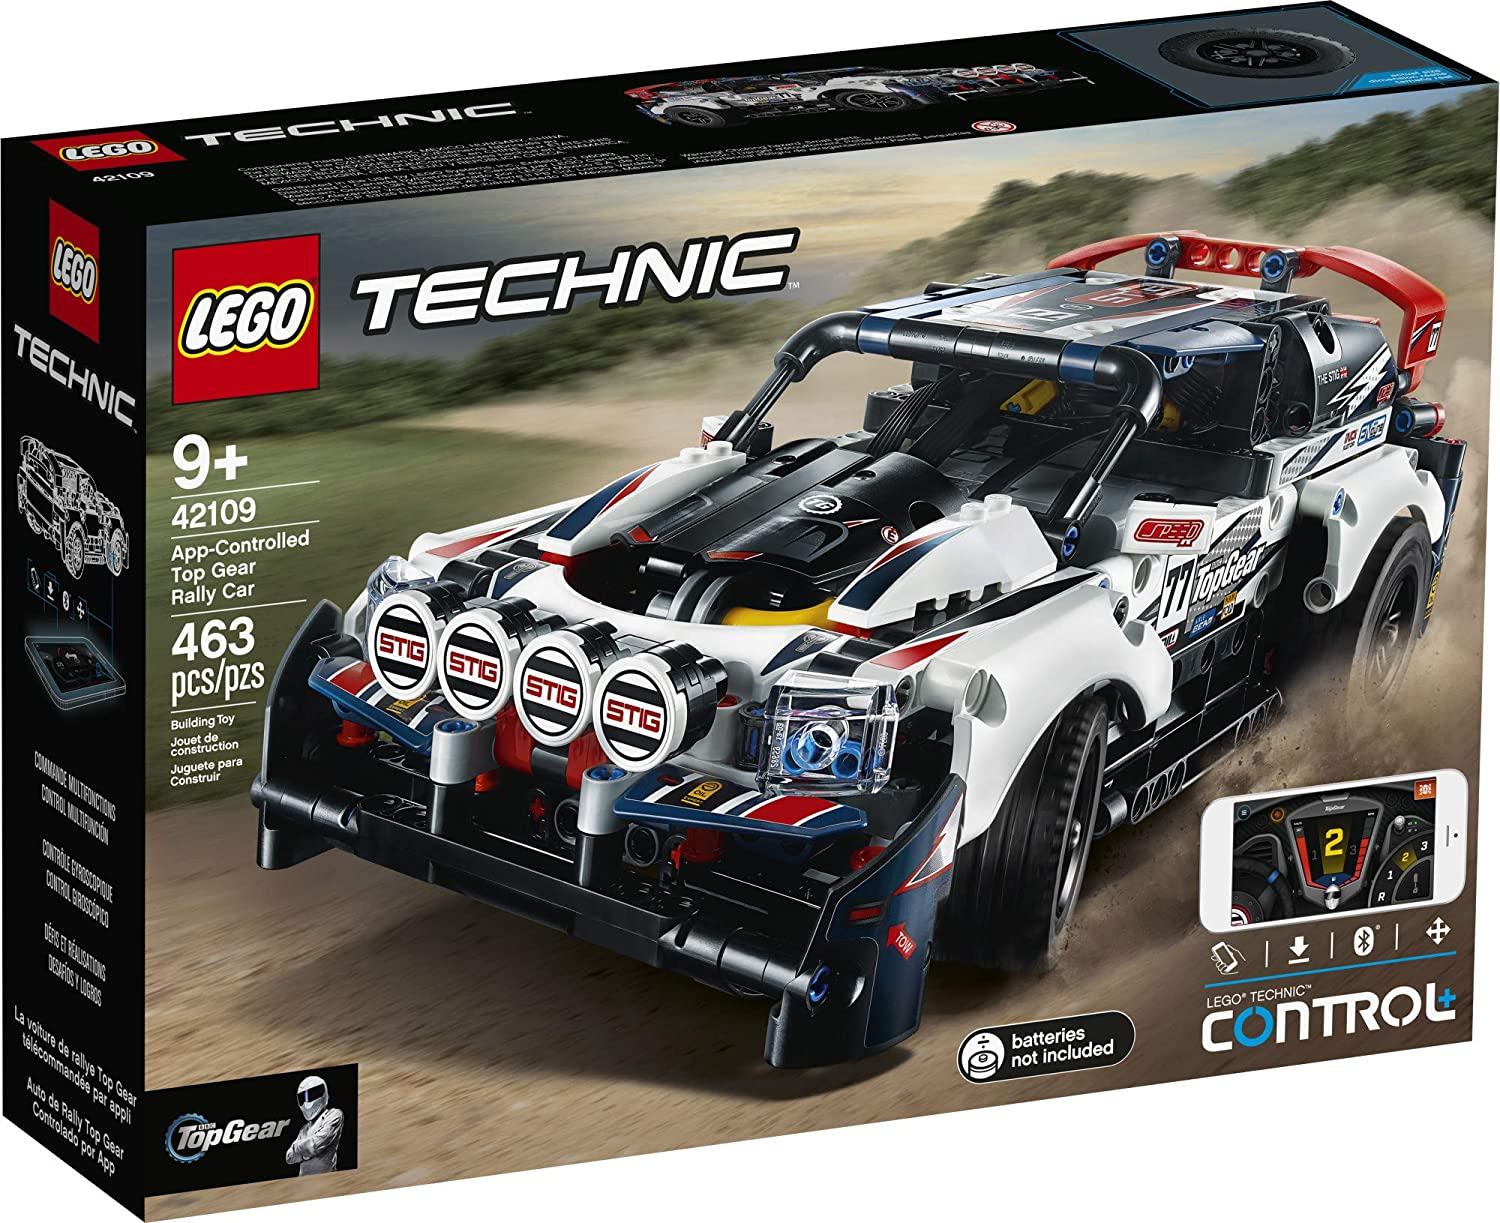 LEGO Technic App-Controlled Top Gear Rally Car